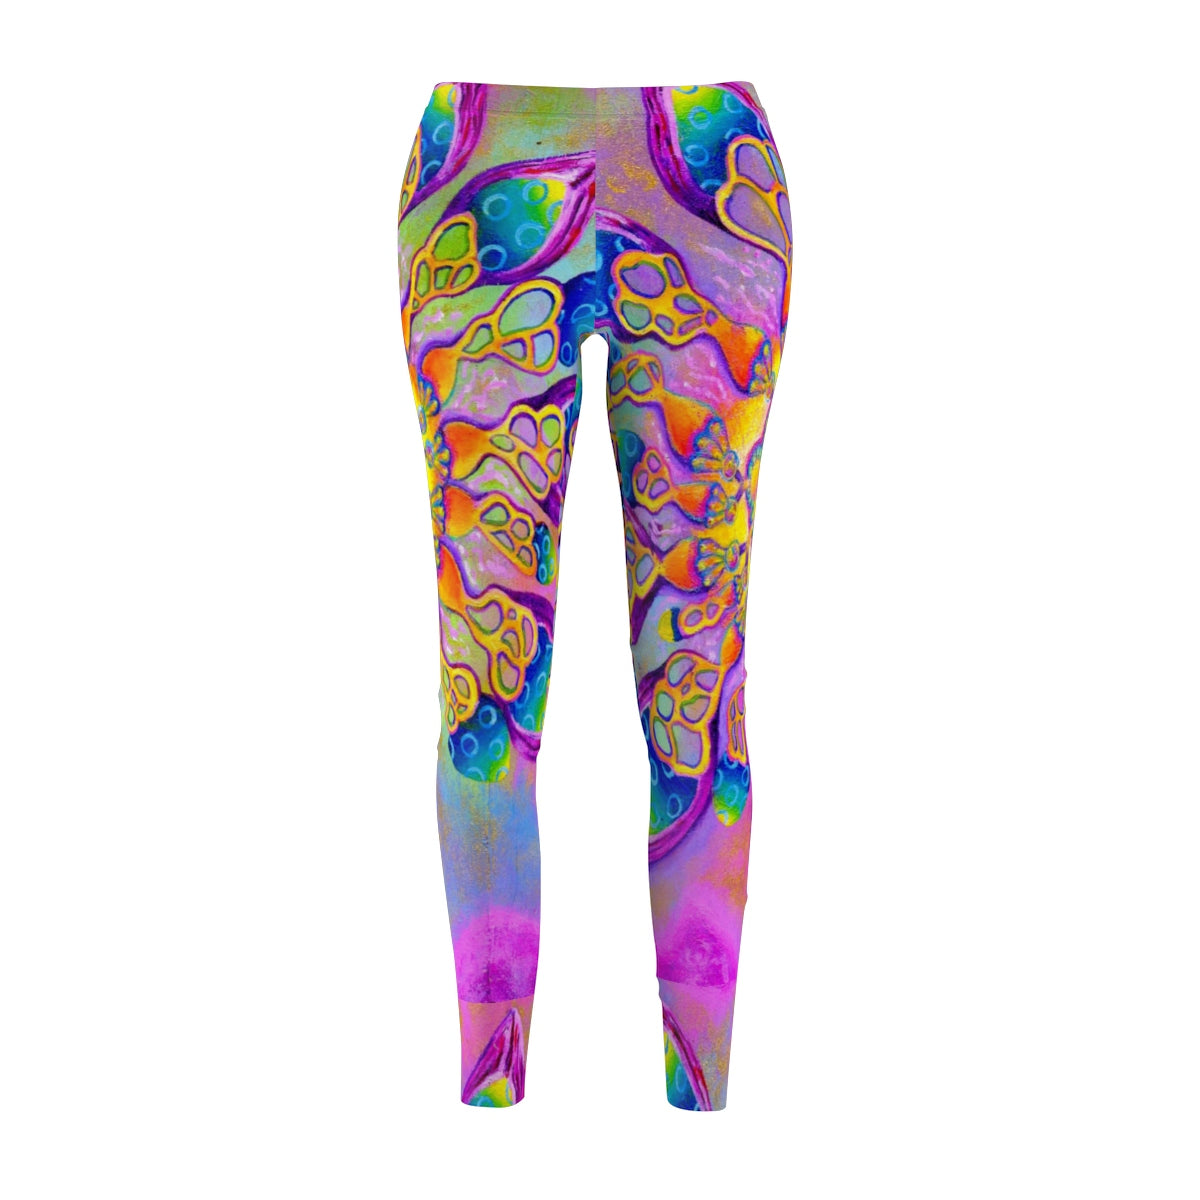 Flowerlicious Leggings